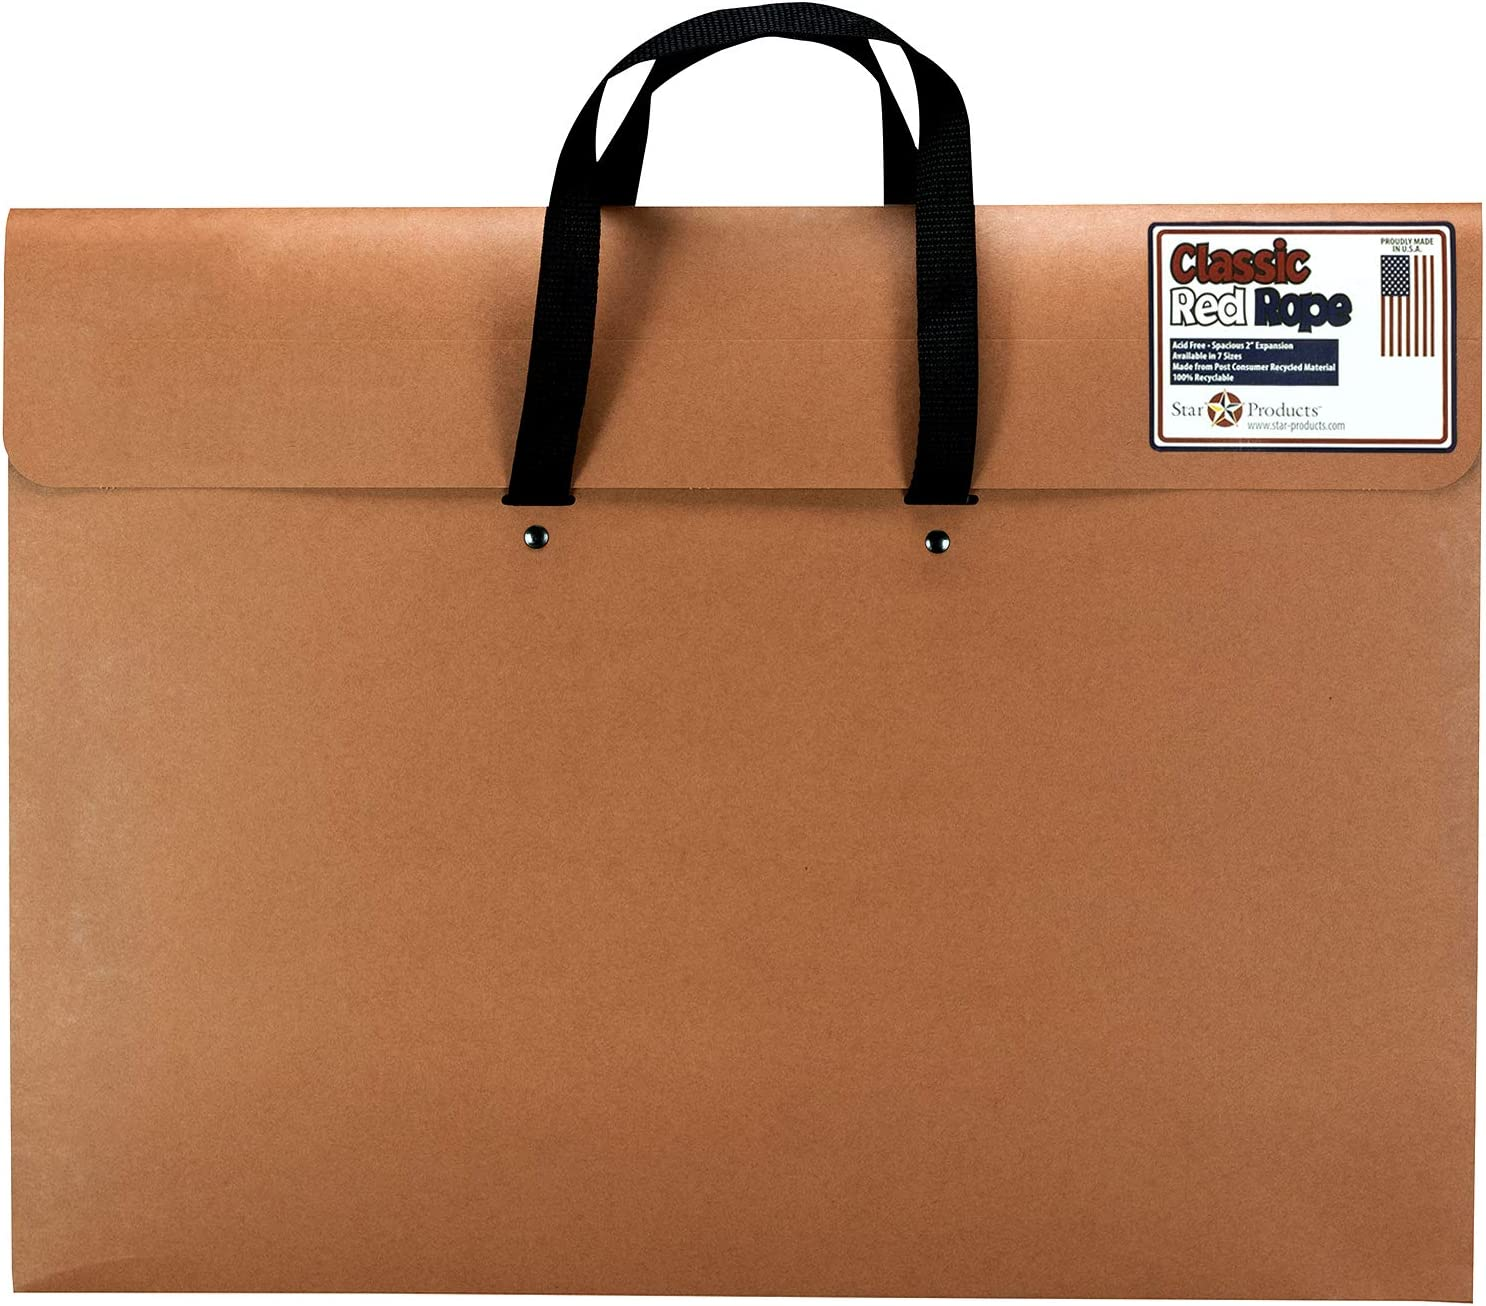 "Star Products Red 223H Classic Rope Paper Artist Portfolio with Soft Woven Handle, 23"" x 31"""